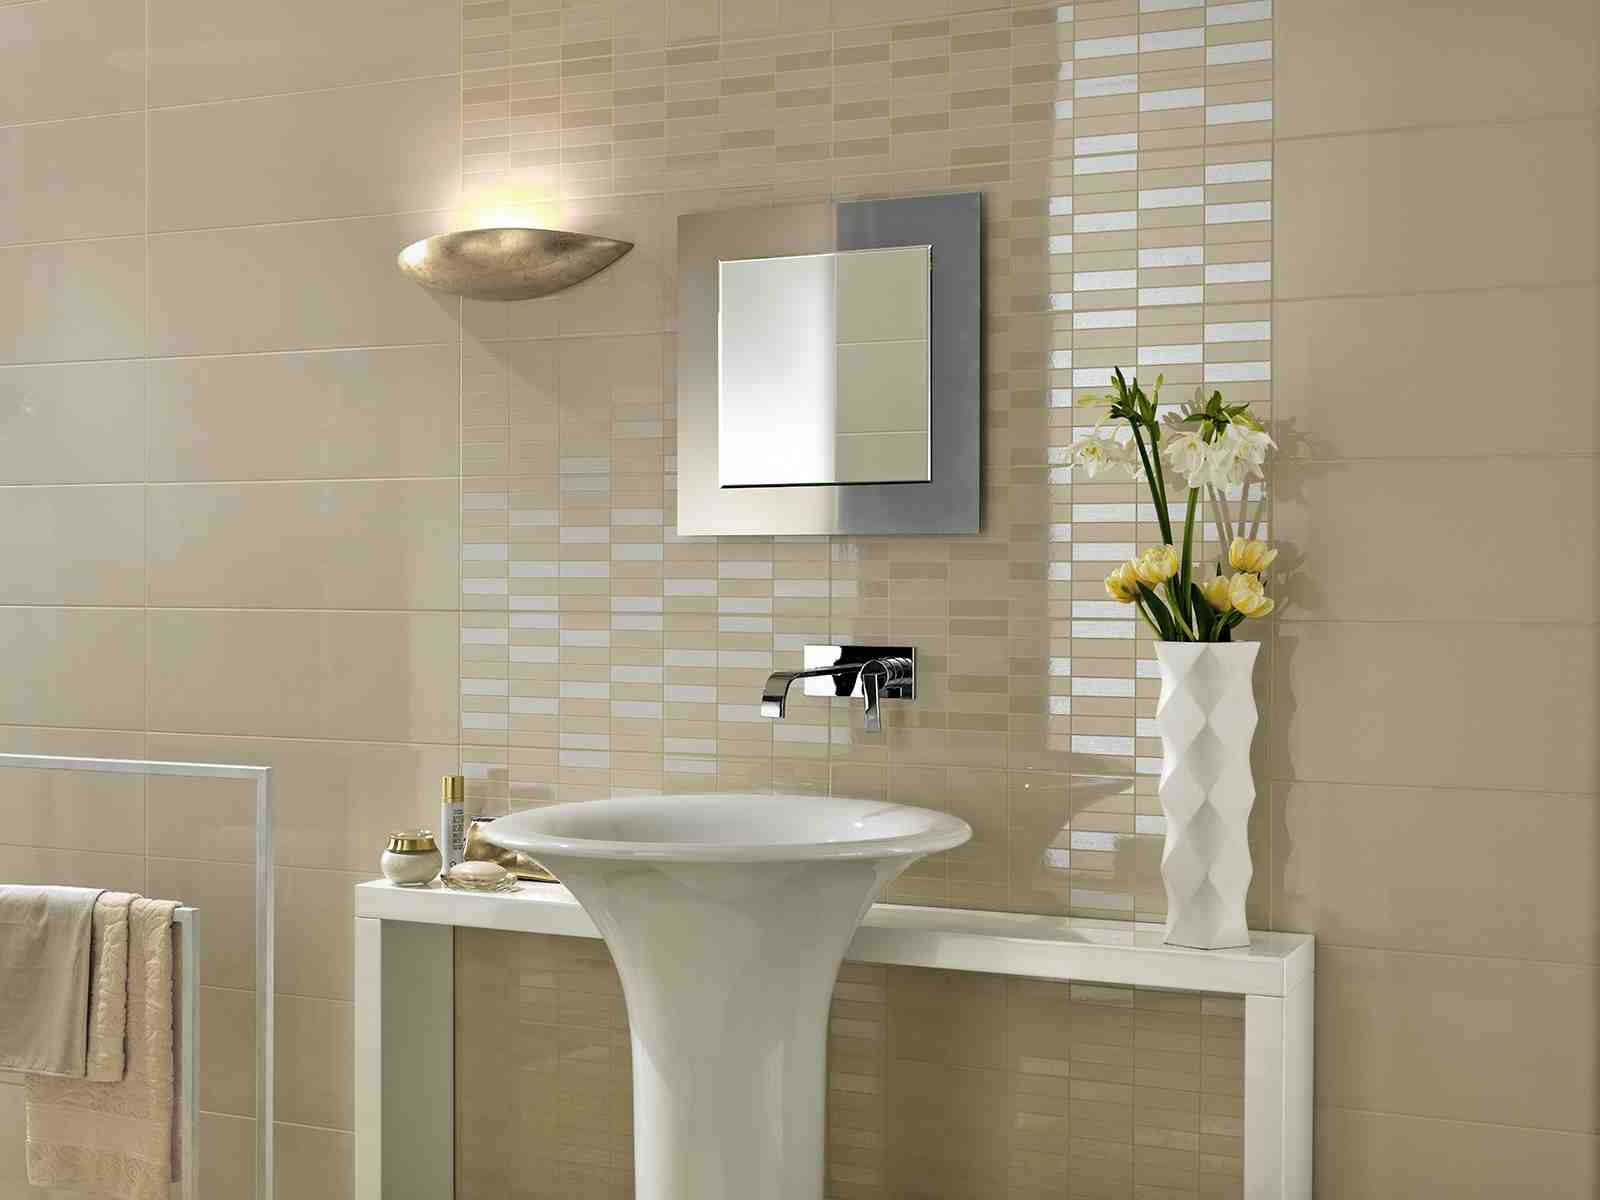 Bathroom Wall Coverings Bathroom Wall Coverings Room Wall Tiles Bathroom Wall Tile